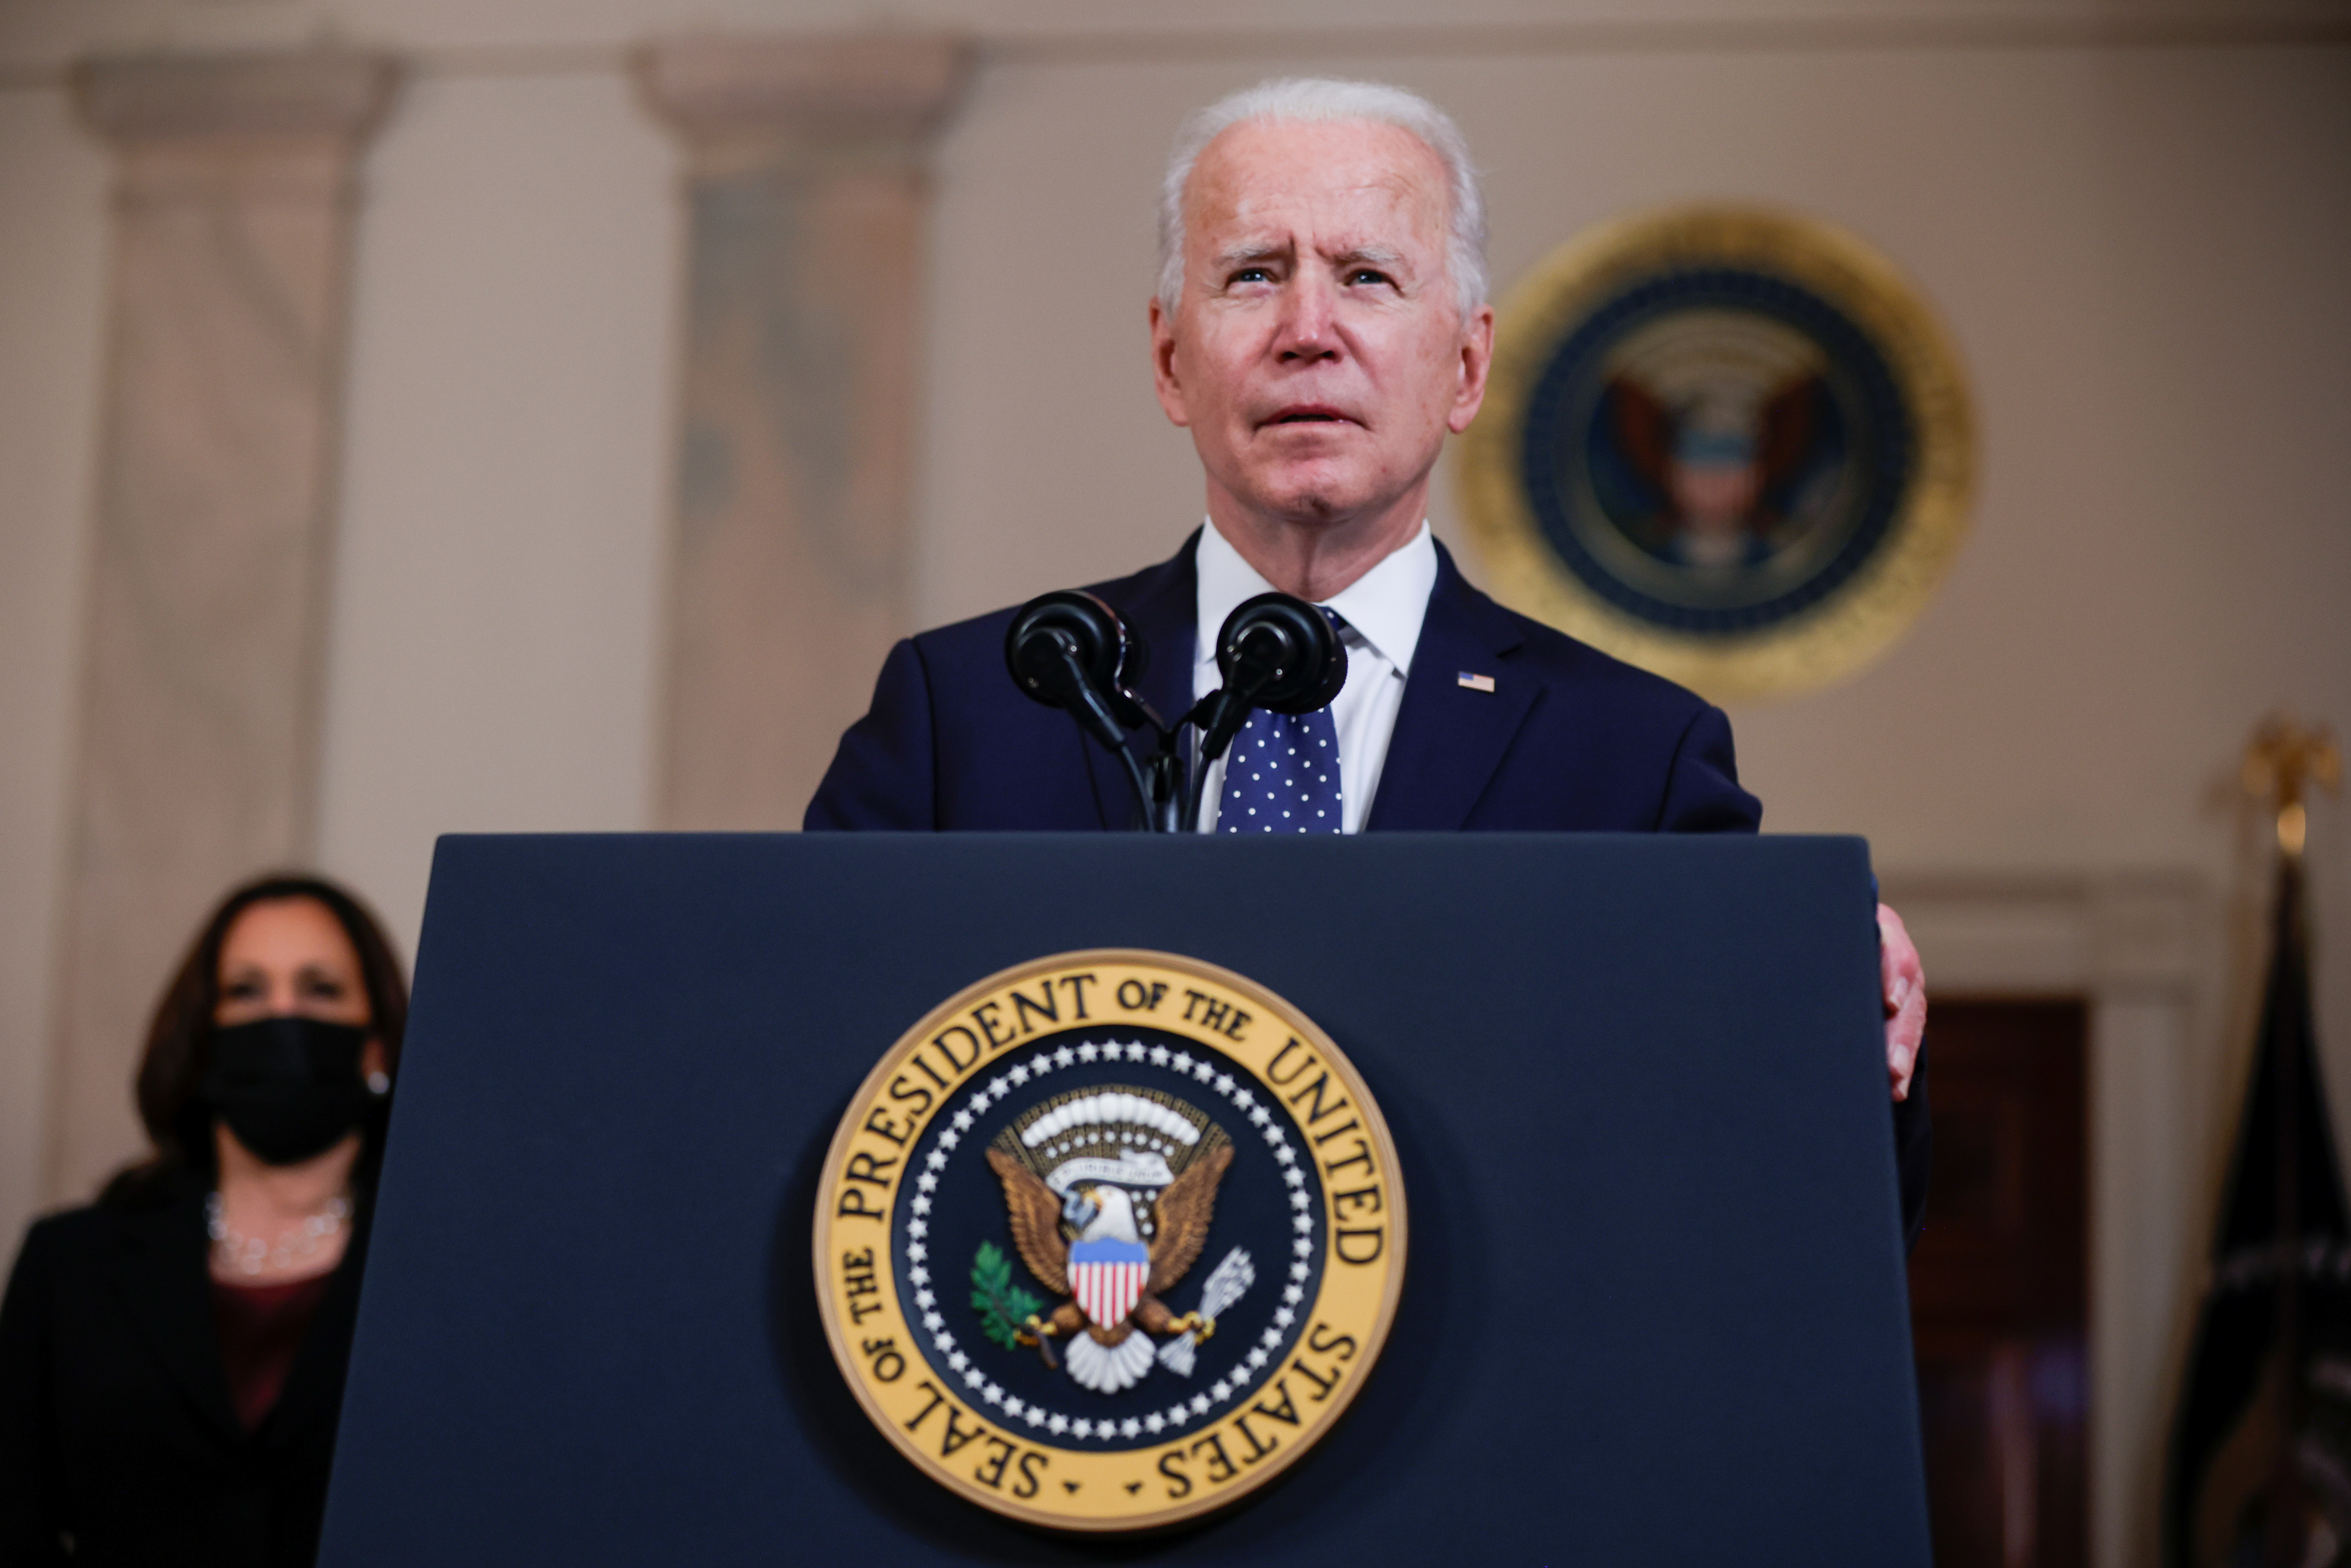 U.S. President Joe Biden speaks after a jury reached guilty verdicts in the murder trial of former Minneapolis police officer Derek Chauvin stemming from George Floyd's deadly arrest, in the Cross Hall at the White House in Washington, U.S., April 20, 2021. REUTERS/Tom Brenner